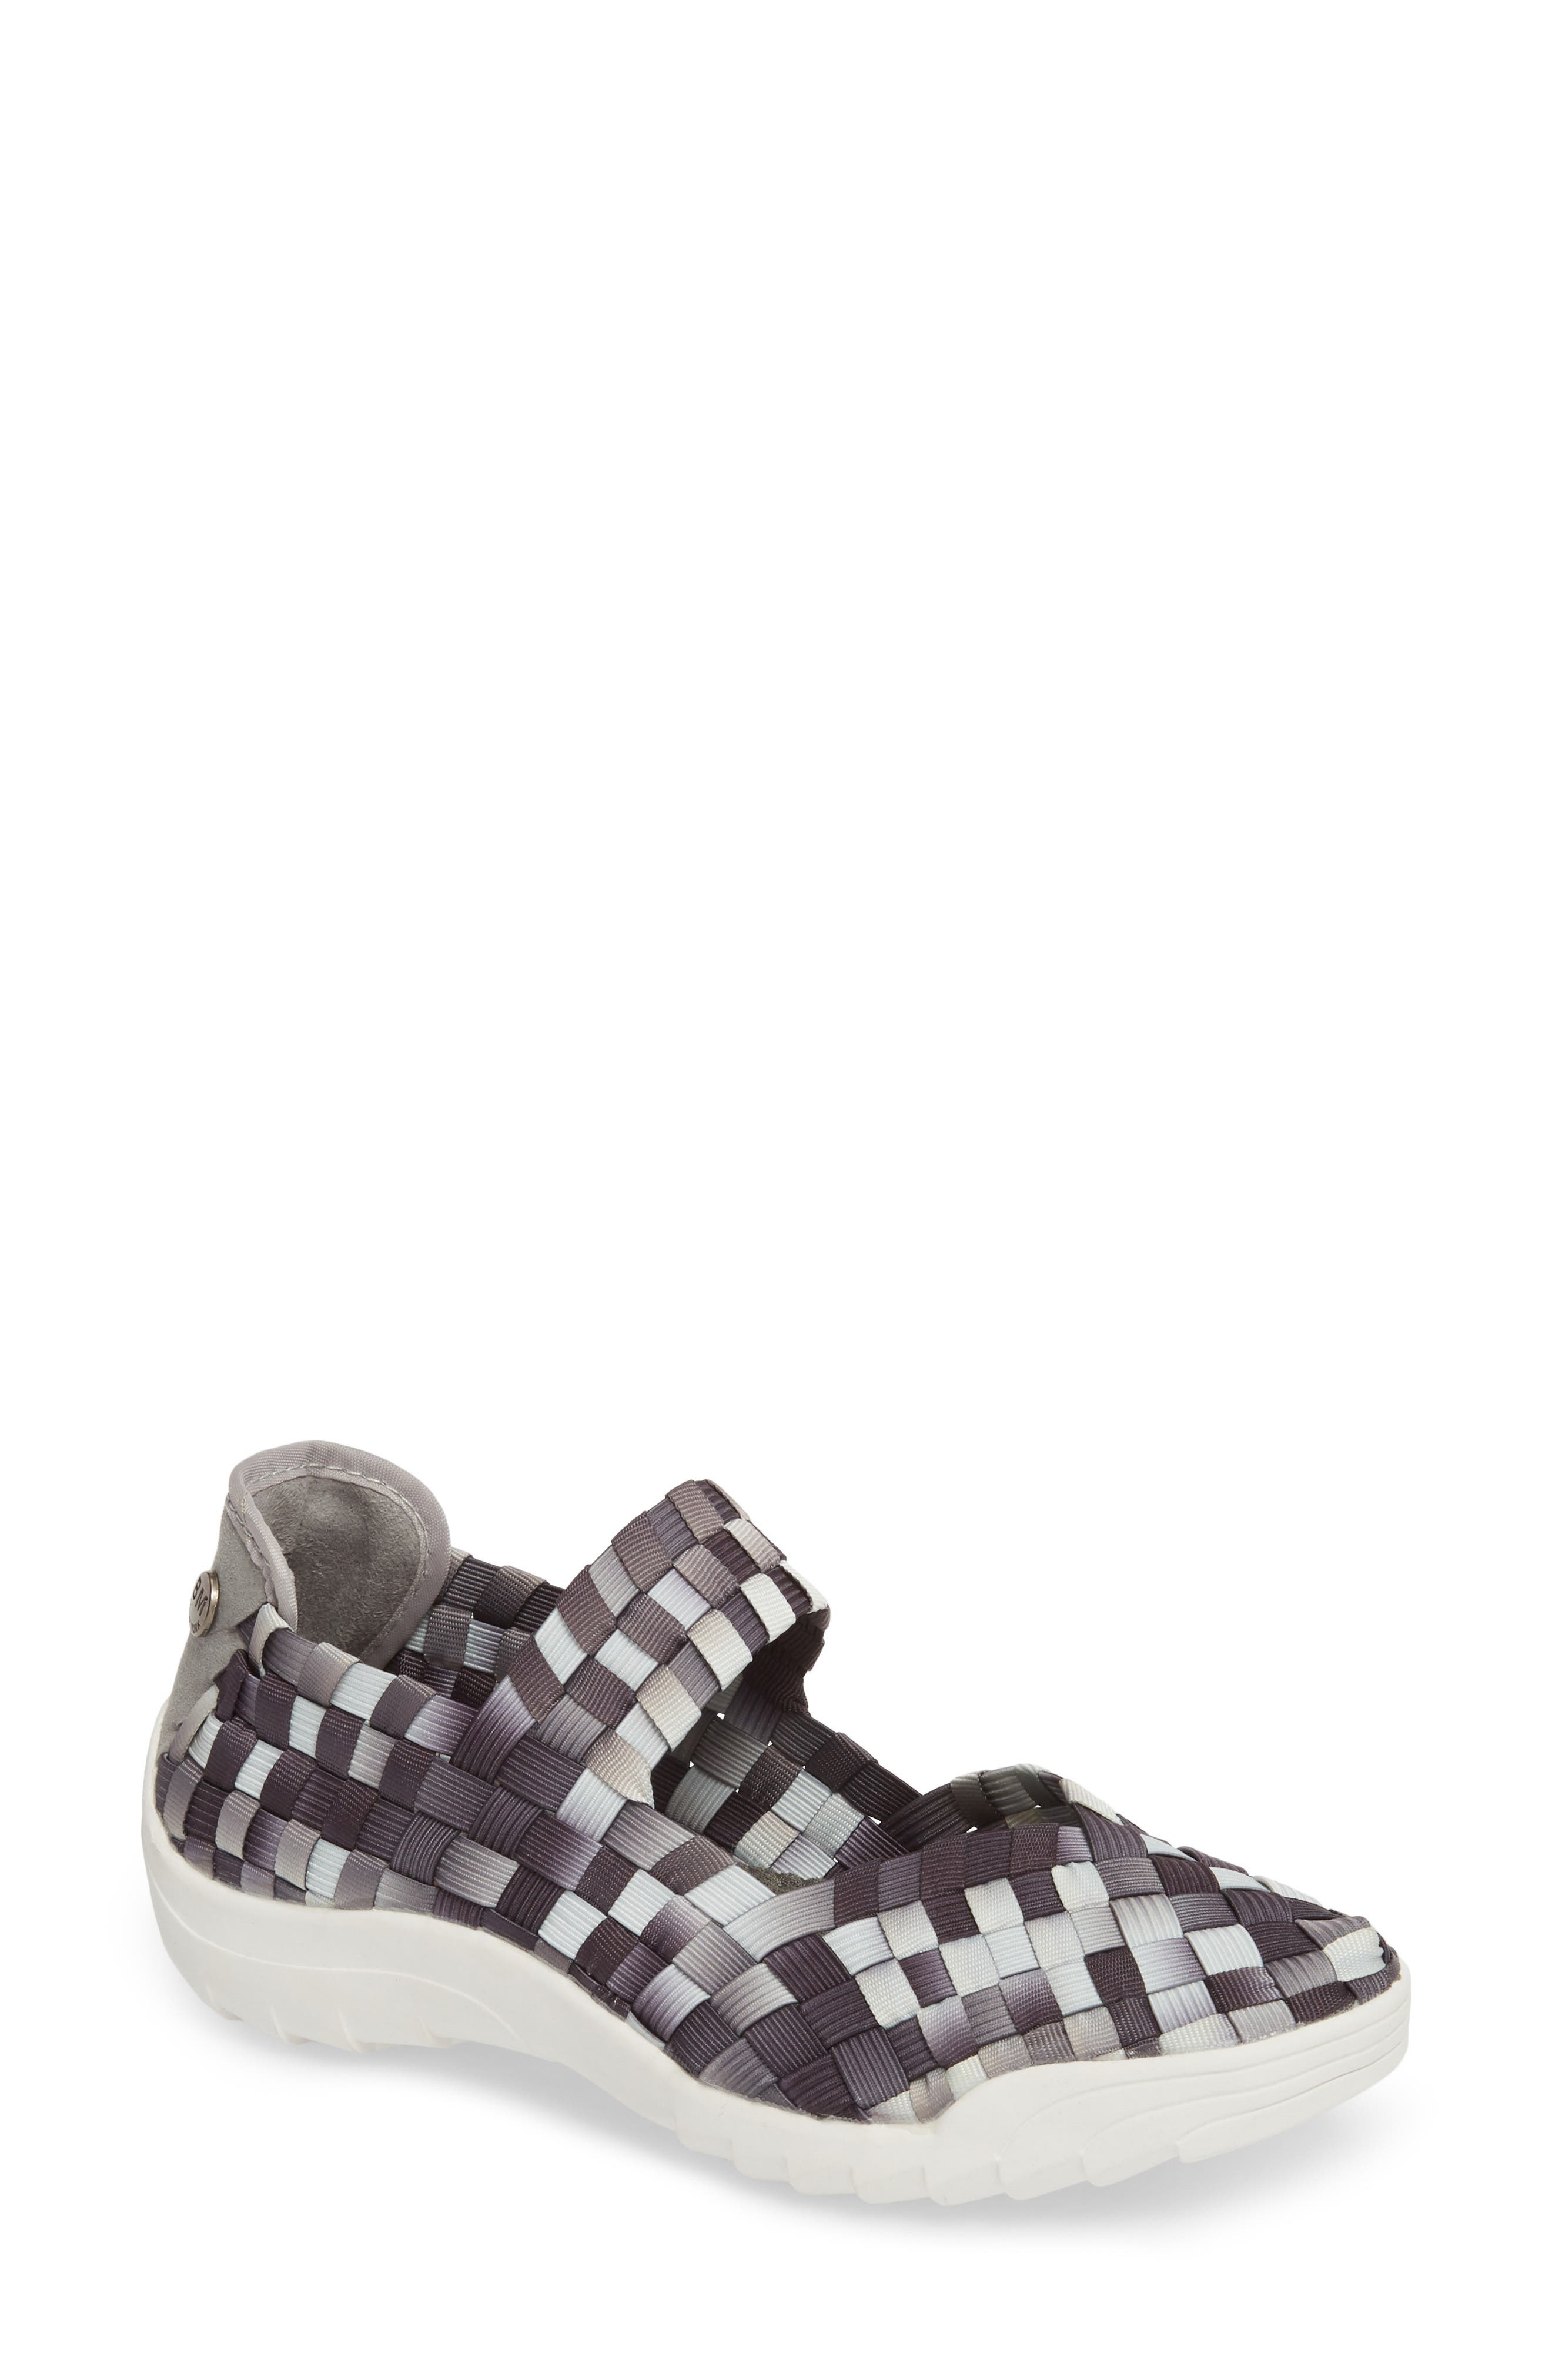 Rigged Charm Sneaker